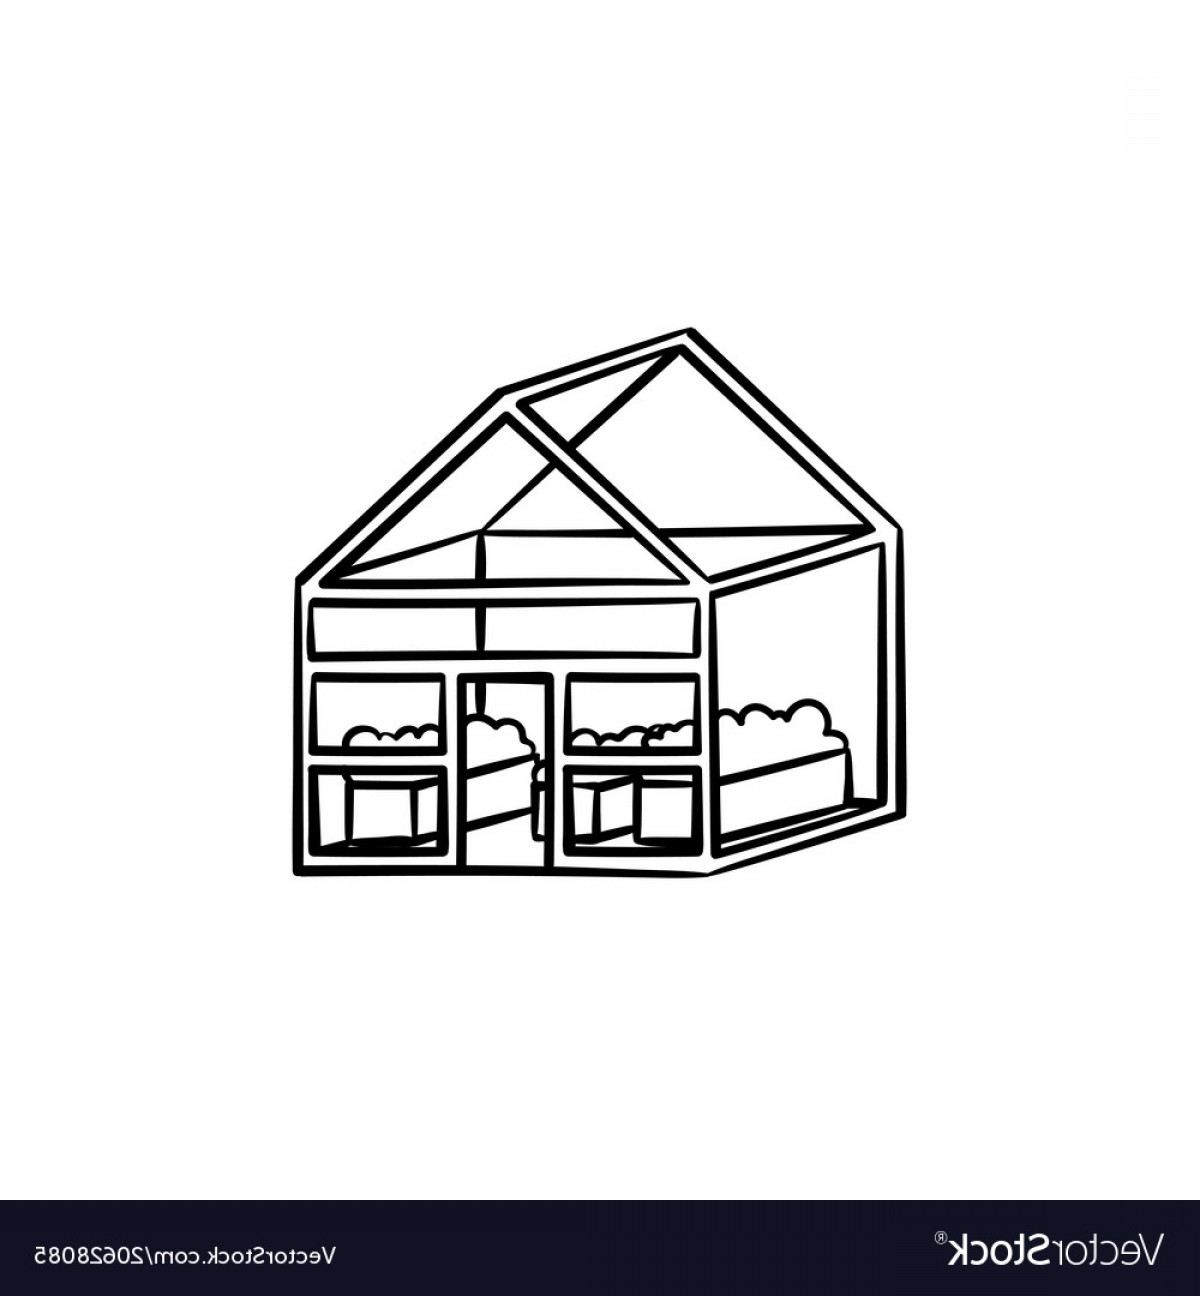 Black And White Vector Greenhouse: Greenhouse Hand Drawn Sketch Icon Vector